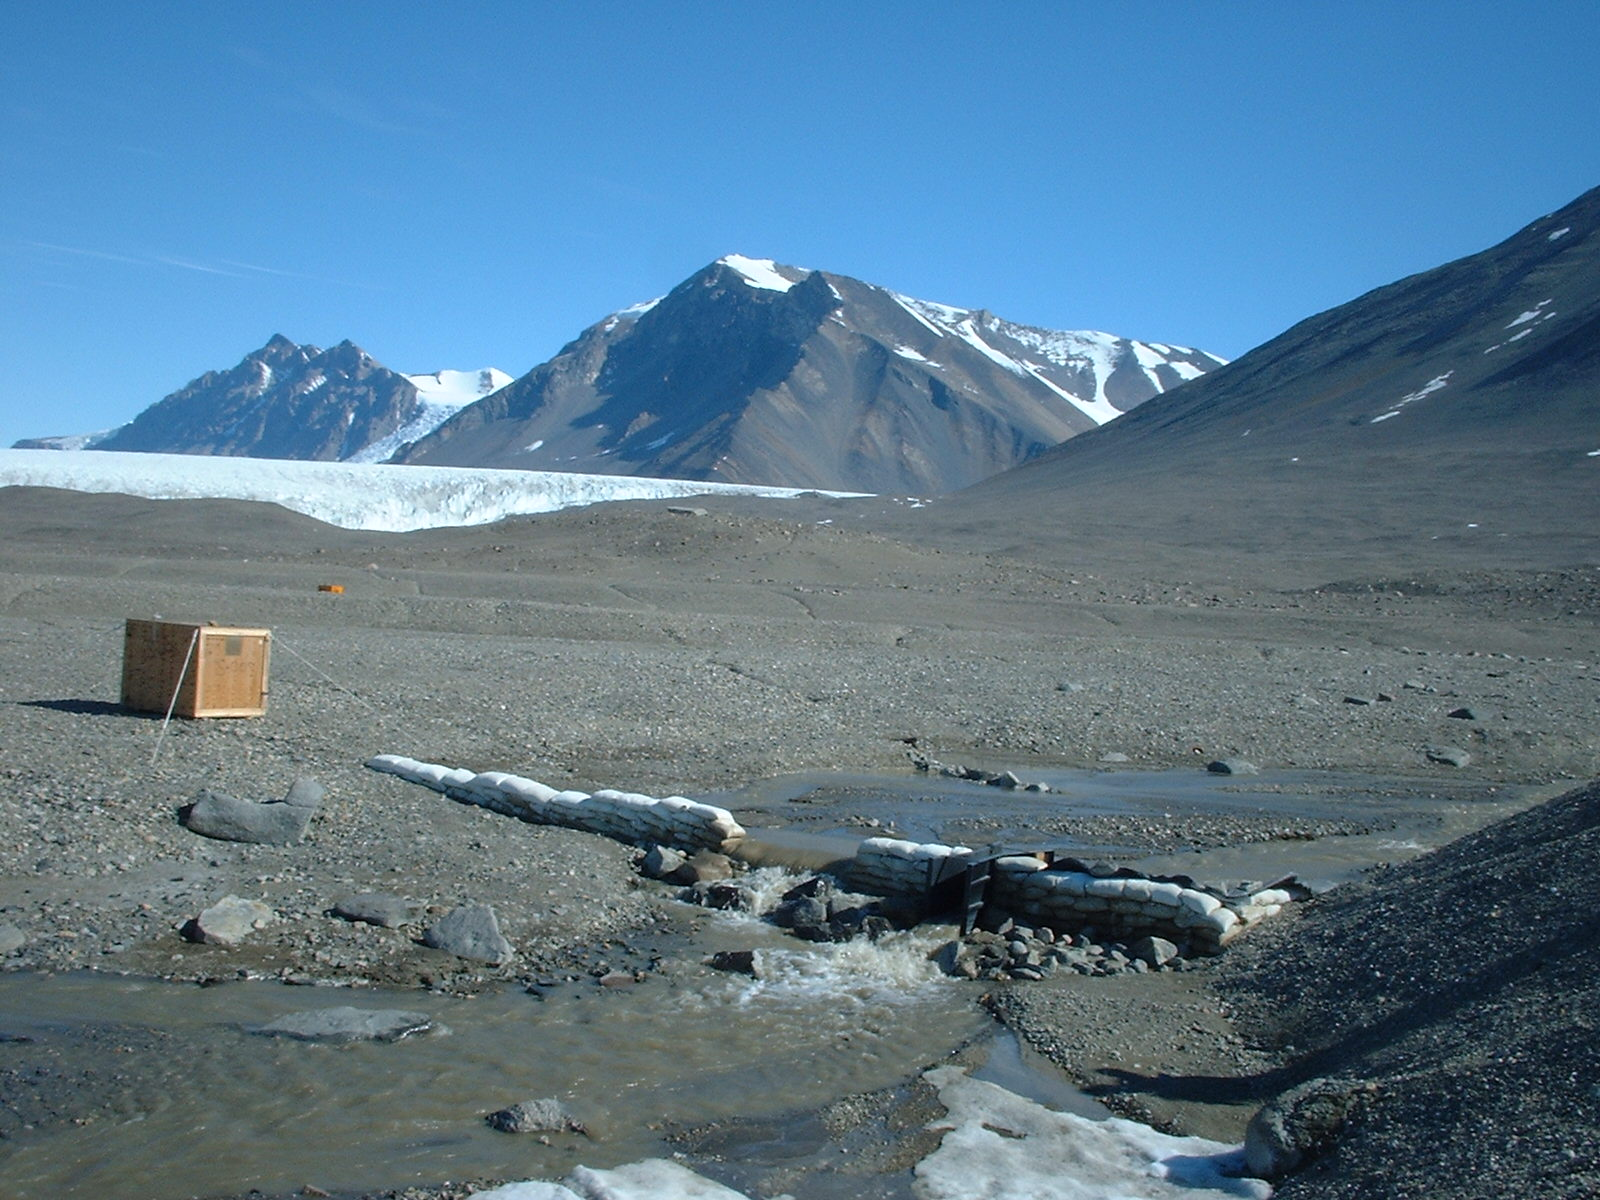 Field site in Antarctica with a crate in the foreground and steep mountains in background.